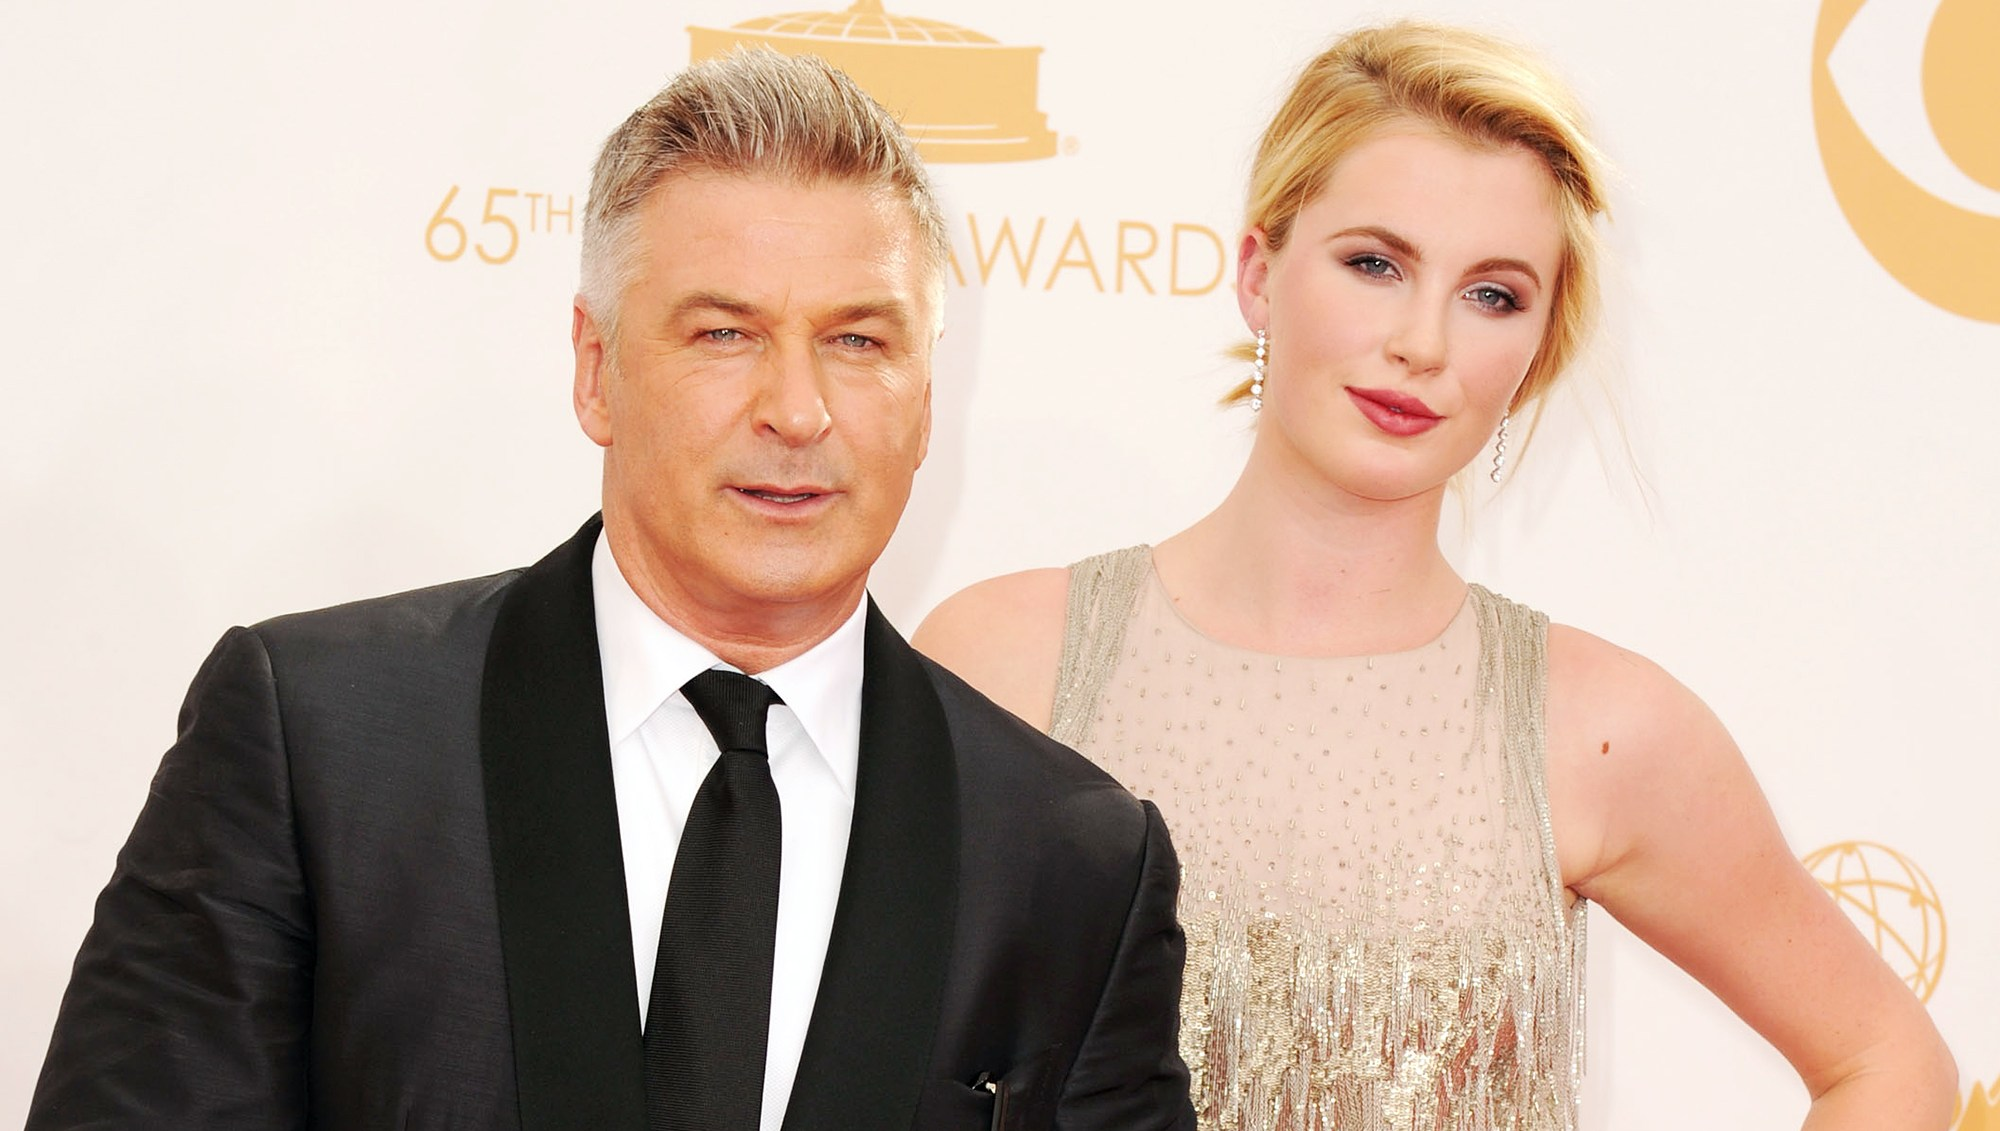 Alec Baldwin Scolds Ireland Baldwin Over Instagram Photo